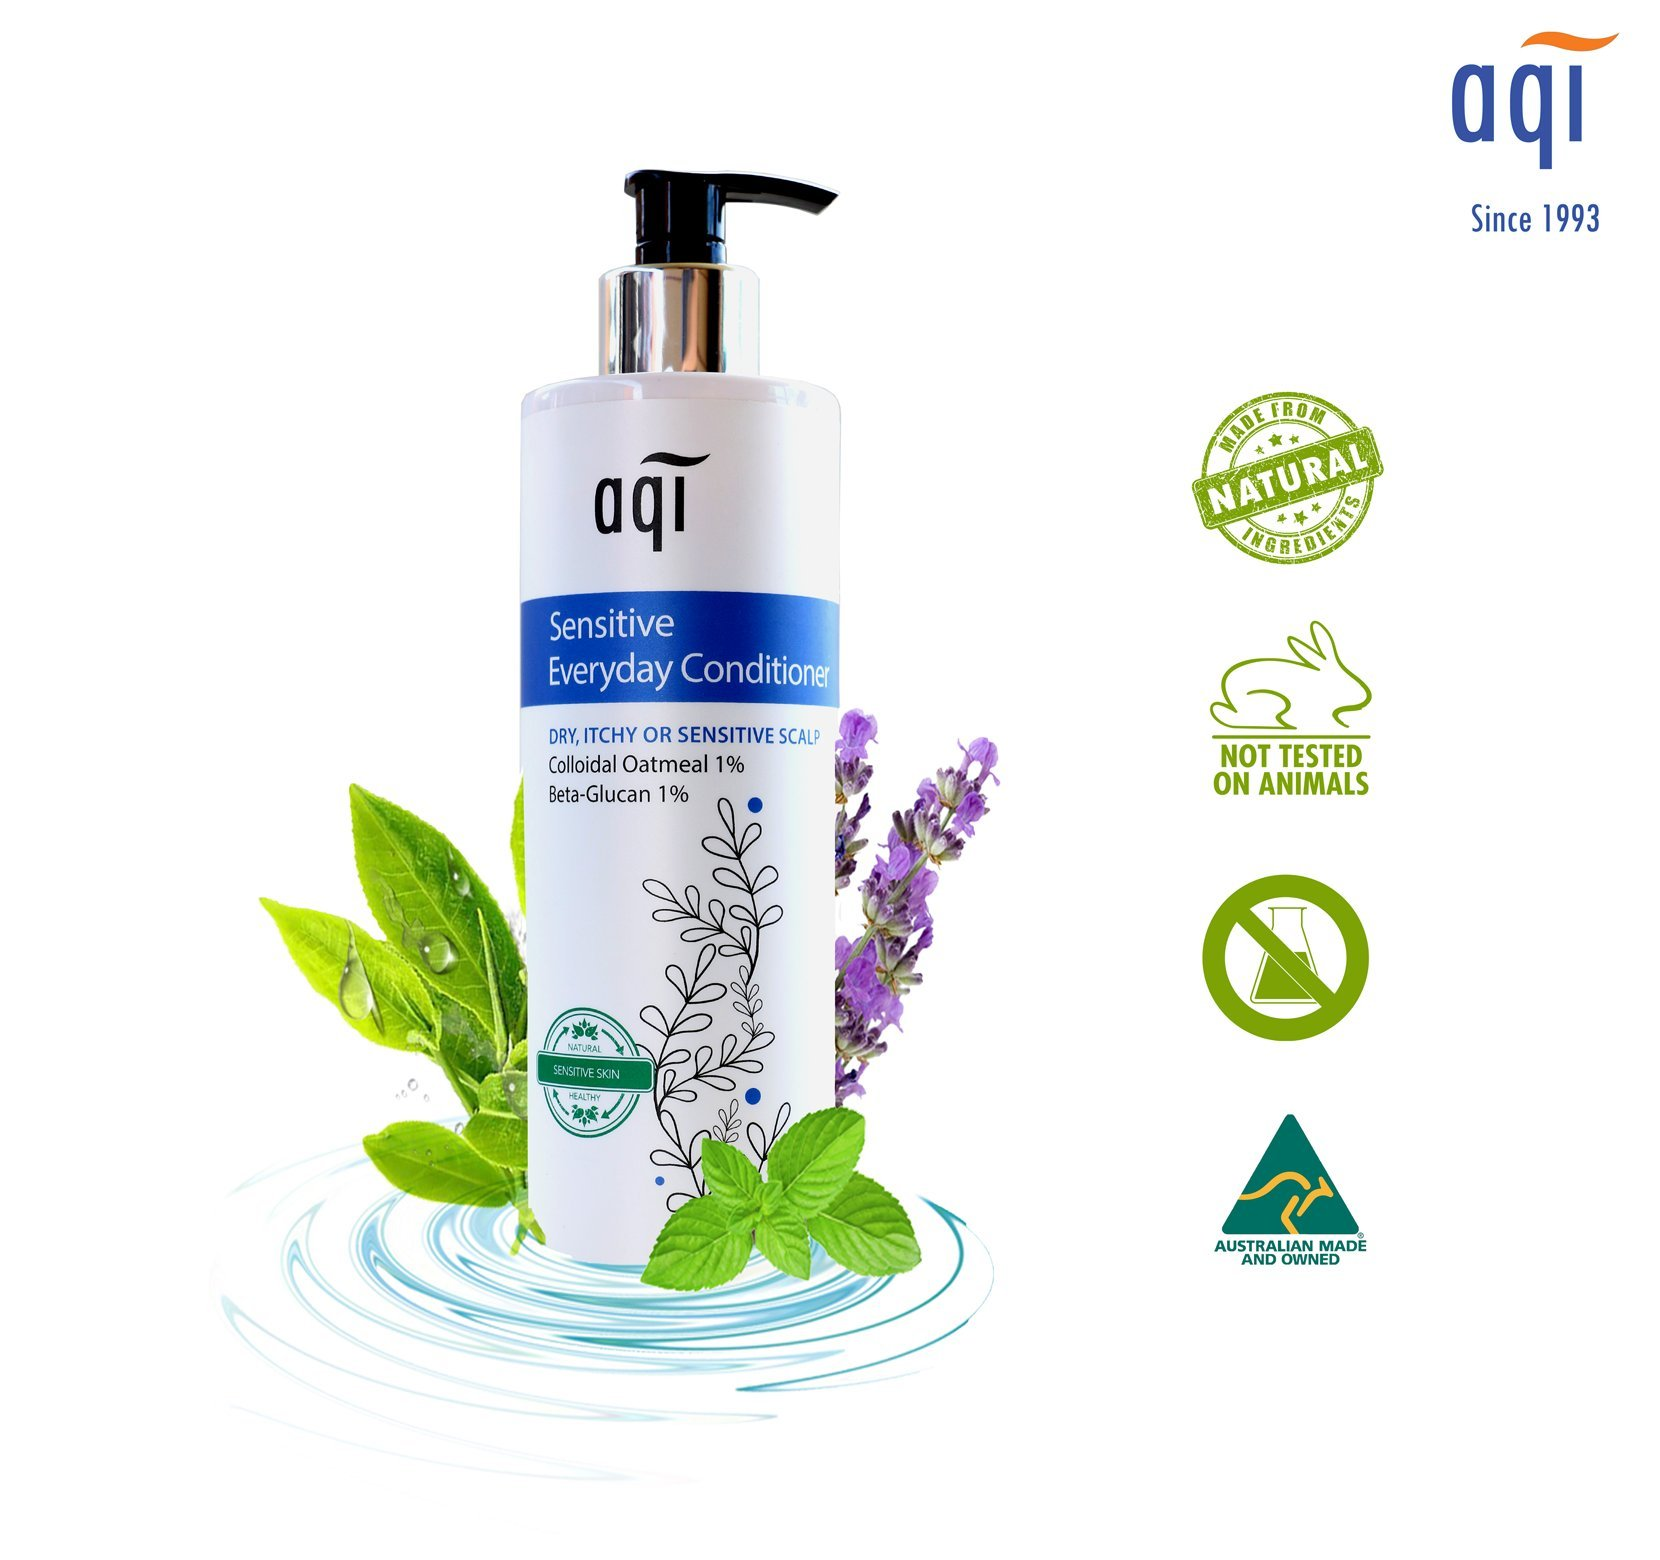 Sensitive, Itchy & Dry Scalp Conditioner 16.9 fl oz - Moisturizing, Vegan & Natural Hair Conditioner for Men & Women - Paraben, Sulphate & Fragrance Free Conditioner - Made in Australia By AQI